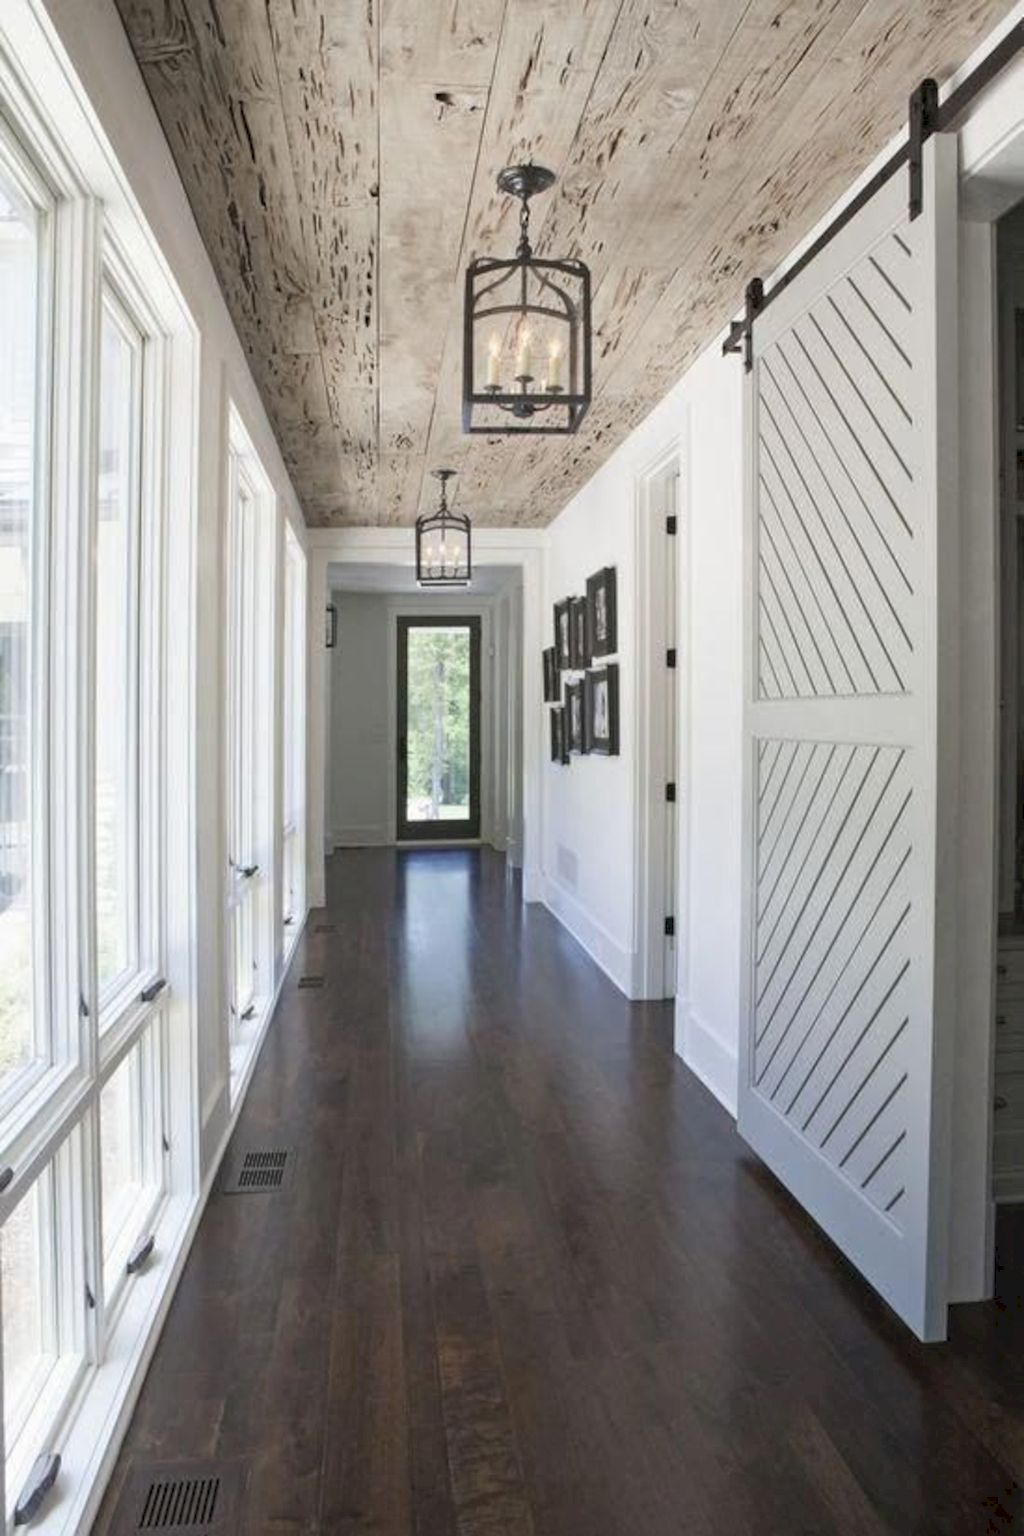 Barn style sliding doors applied as bedroom doors showing a rustic accent in the modern country homes Image 19